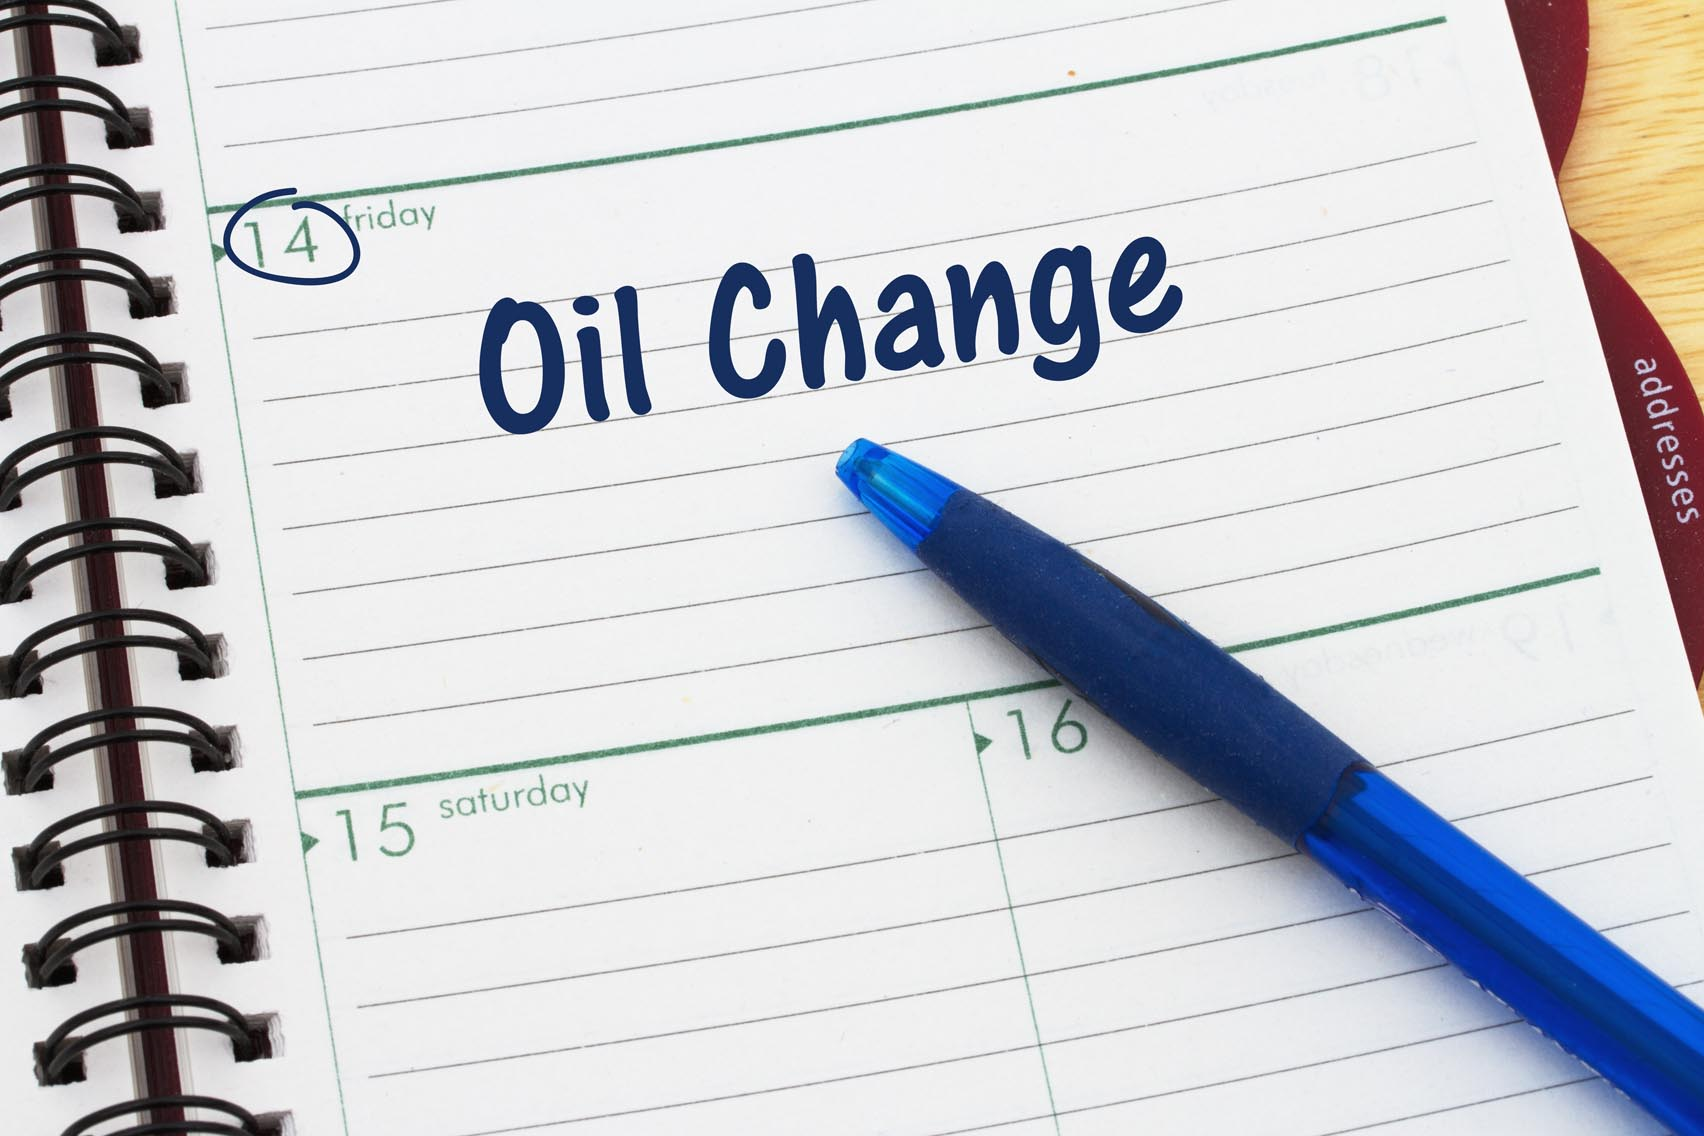 When should I get my oil changed?